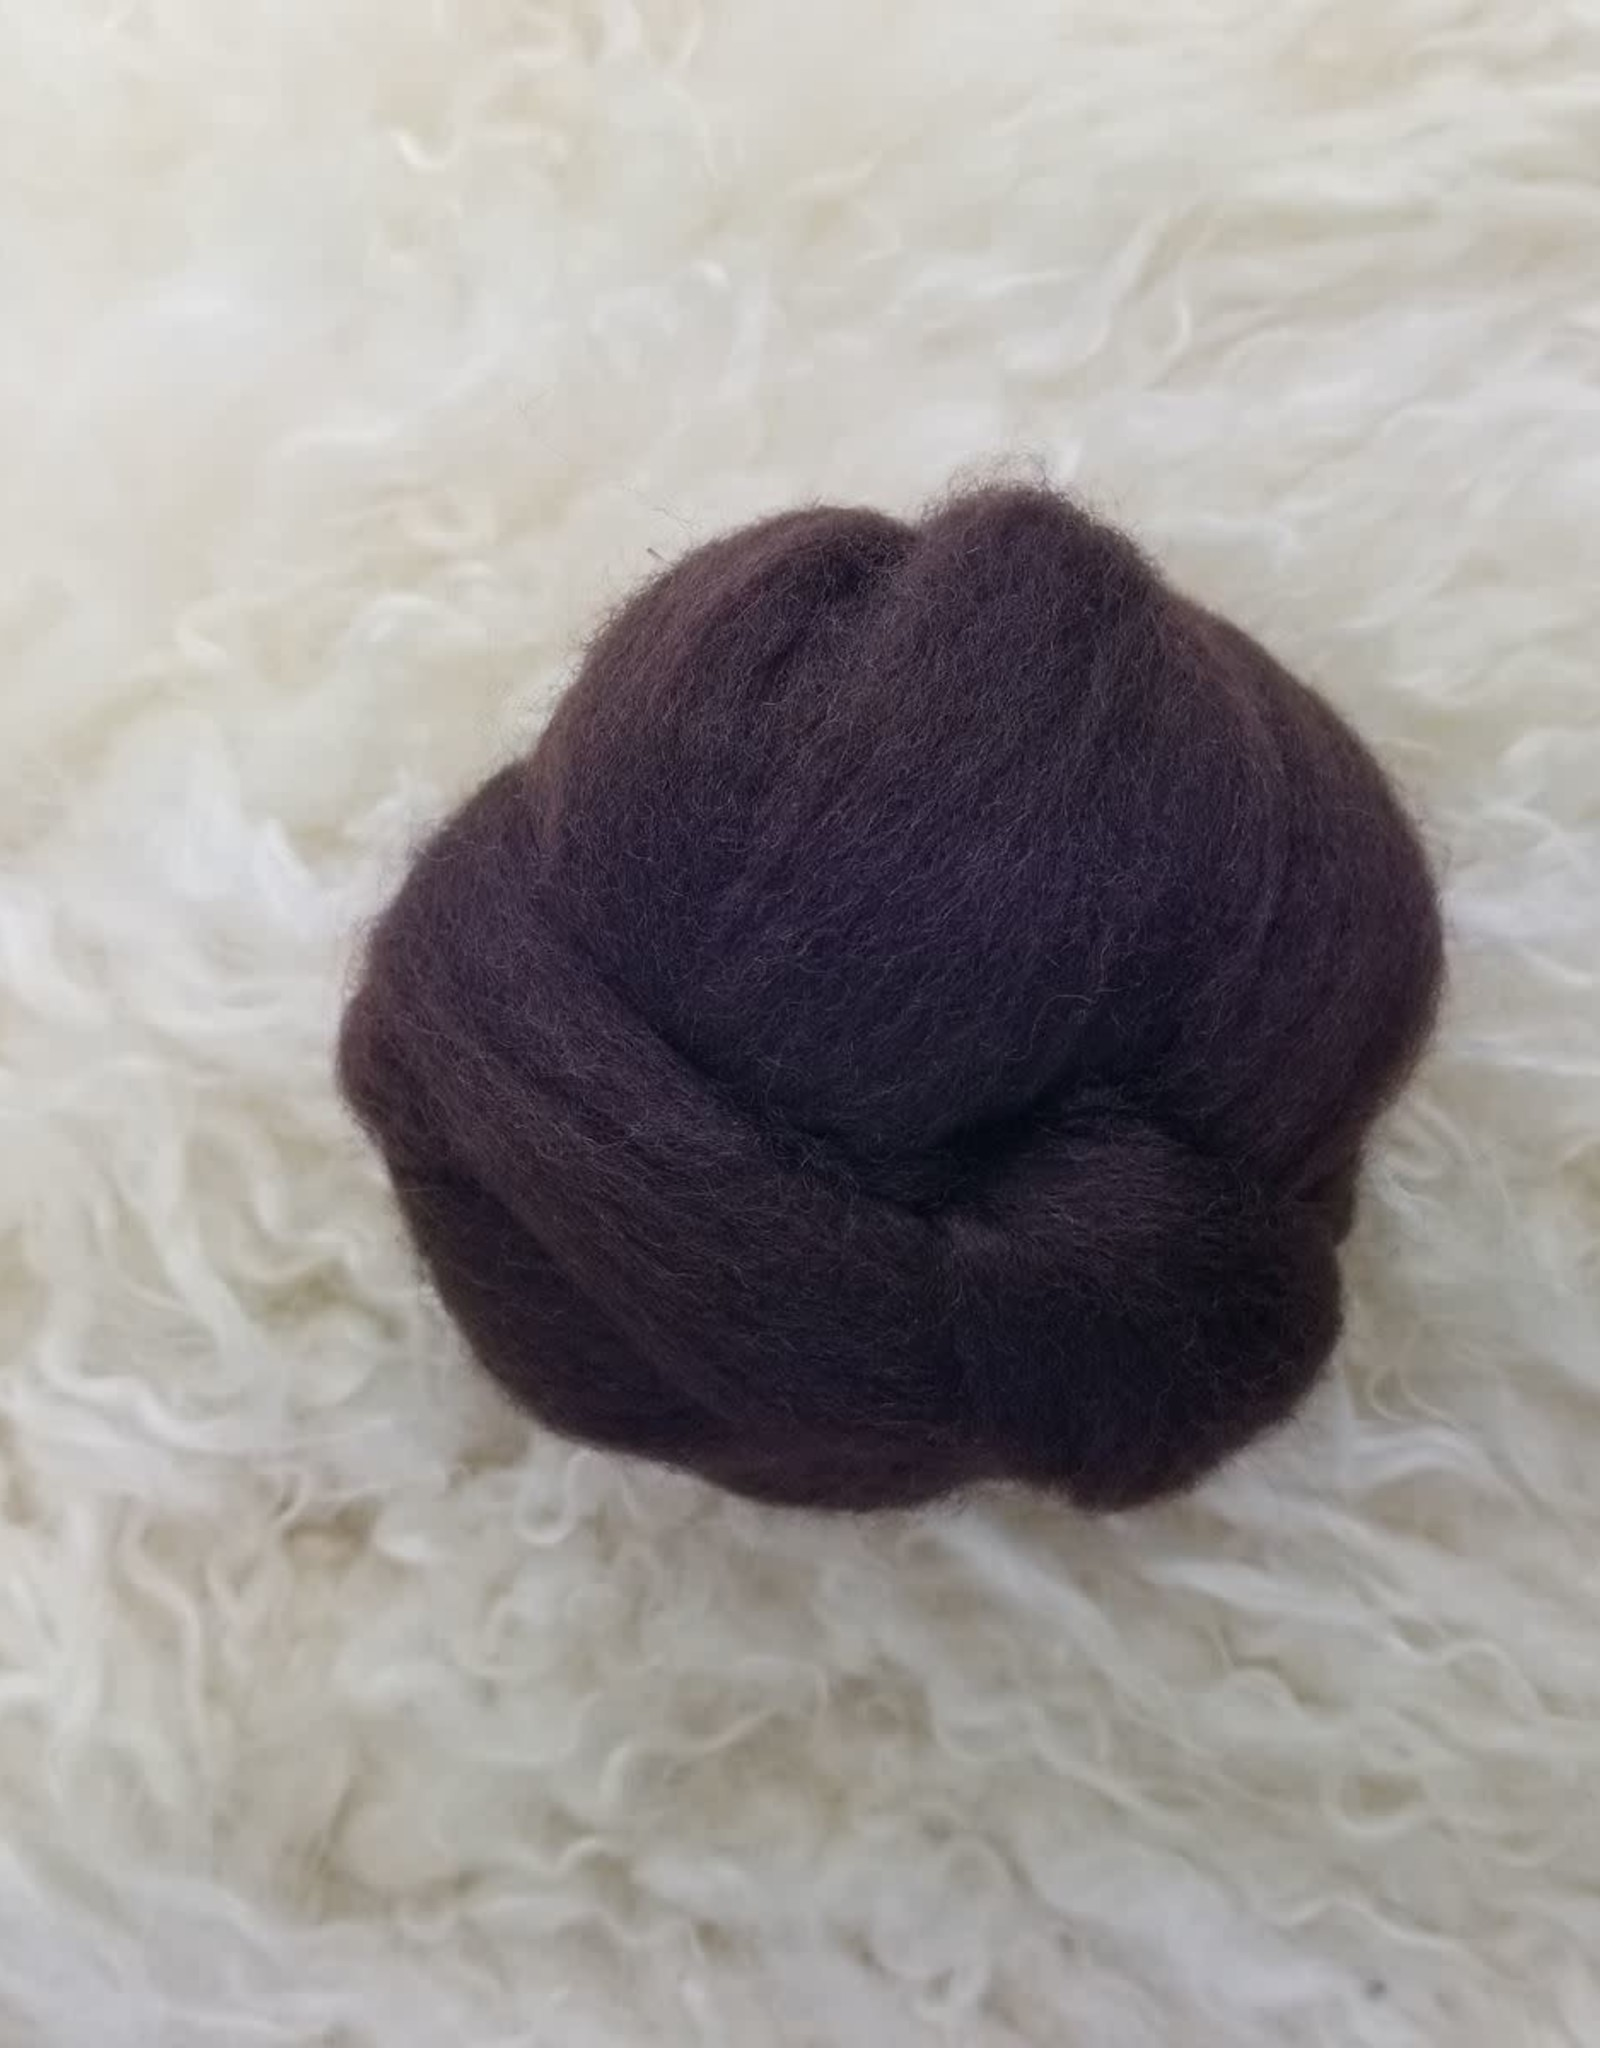 Ashford Fiber Corriedale 2oz Dyed Chocolate combed sliver